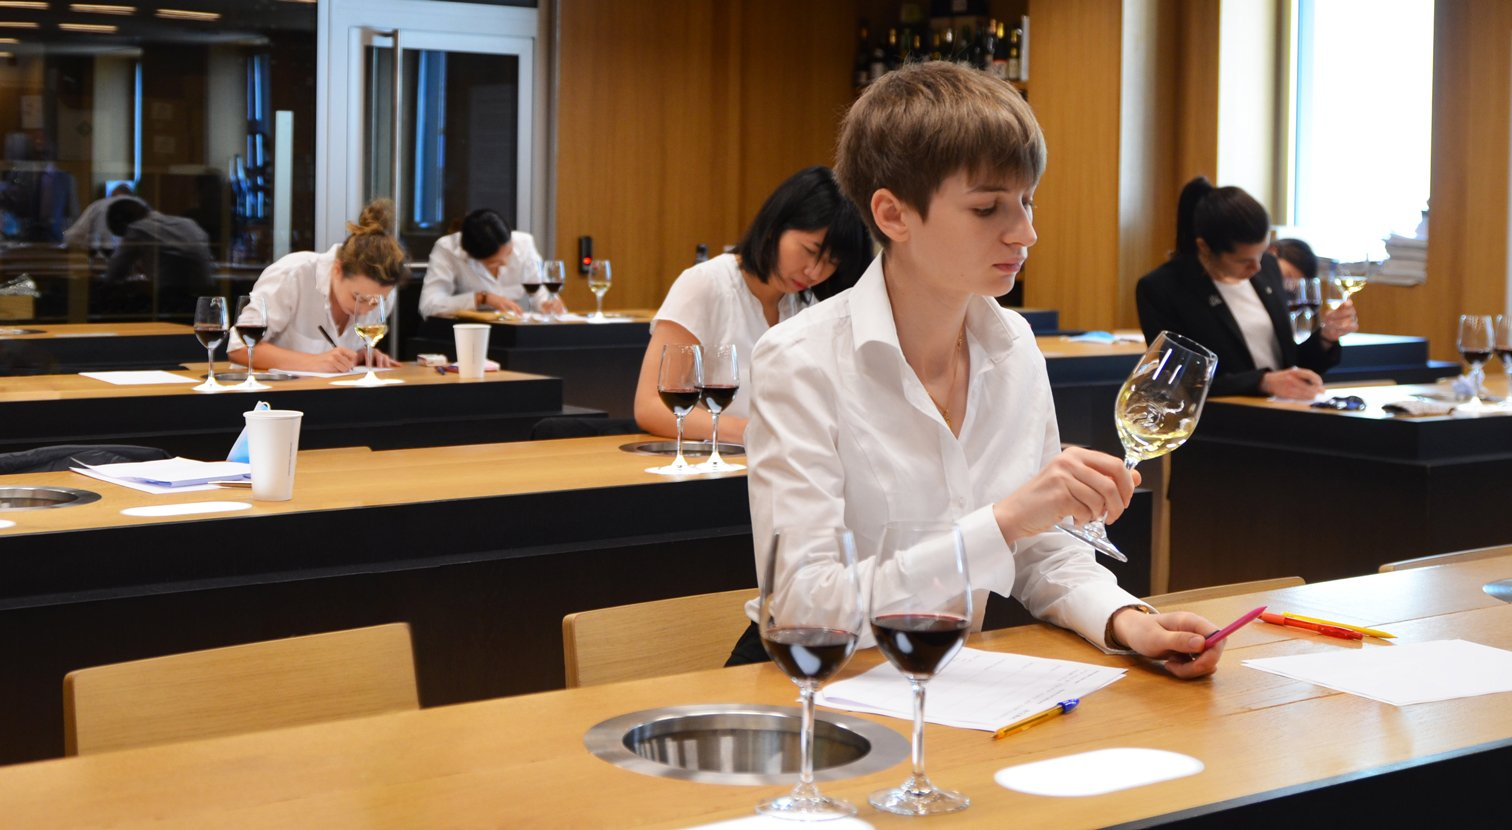 The 5 strong points of the Wine and Management Diploma